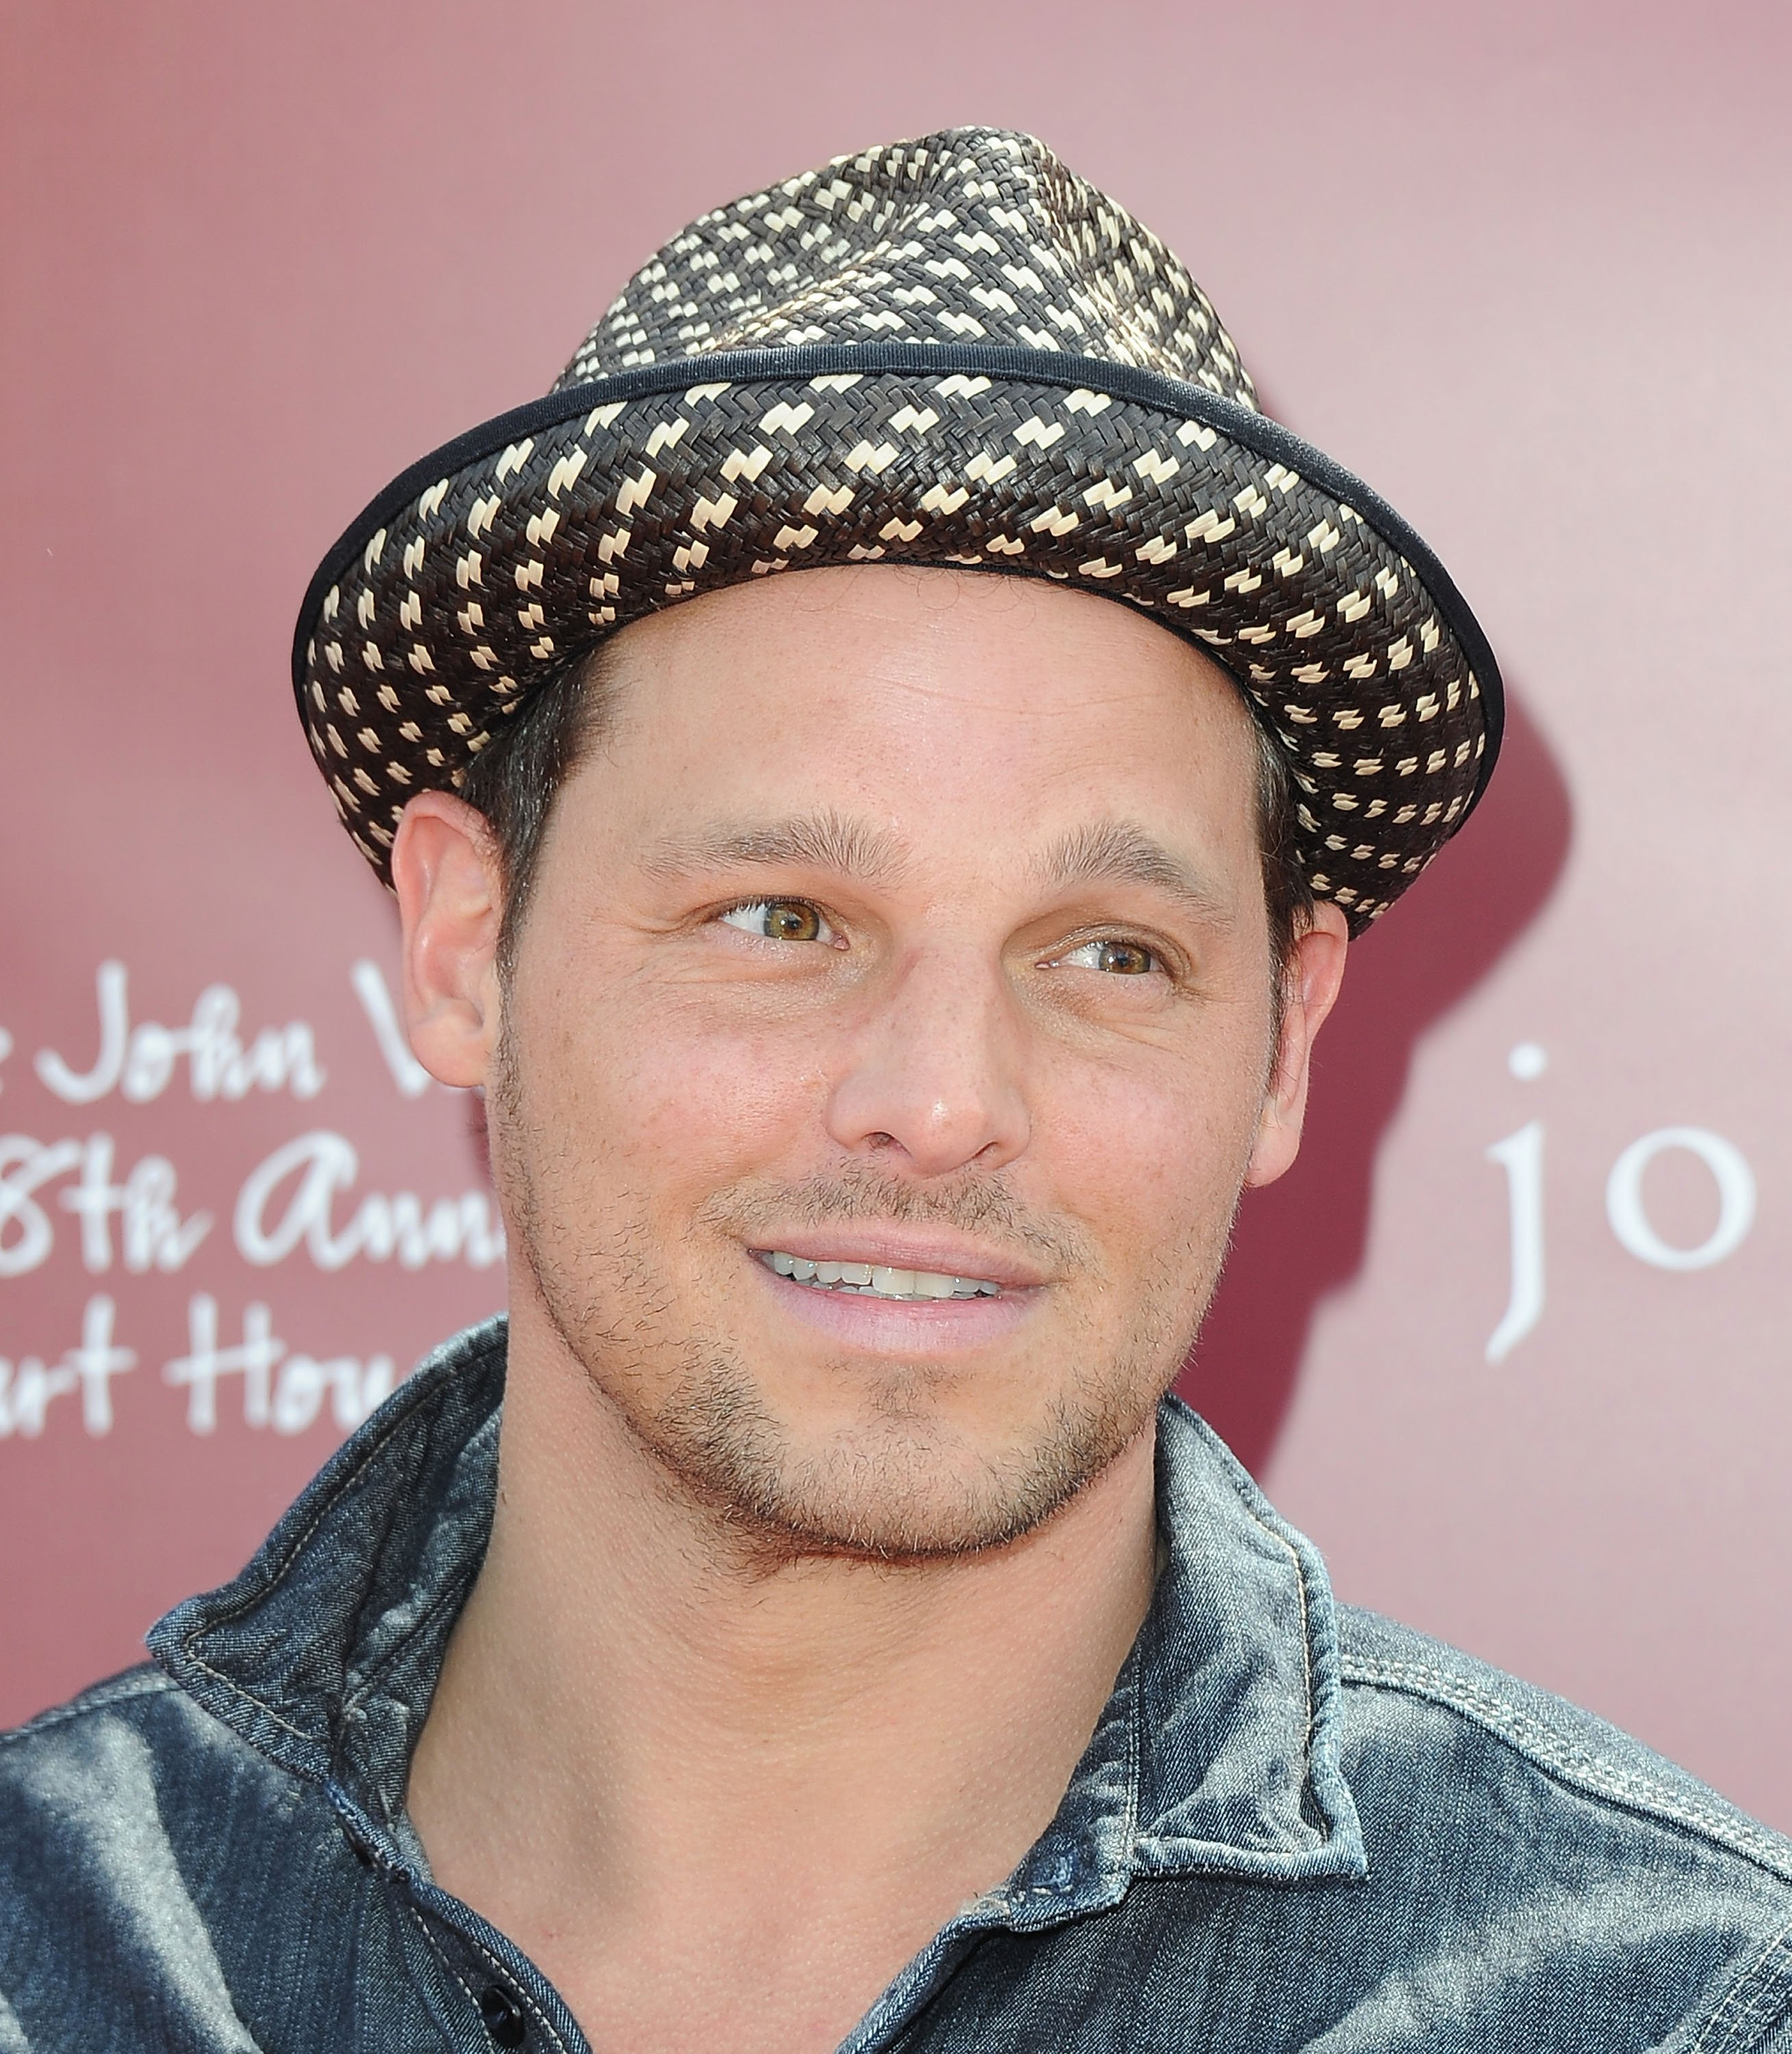 Justin Chambers attends John Varvatos' 8th Annual Stuart House Benefit at the John Vavatos Store on March 13, 2011, in West Hollywood, California. | Source: Getty Images.